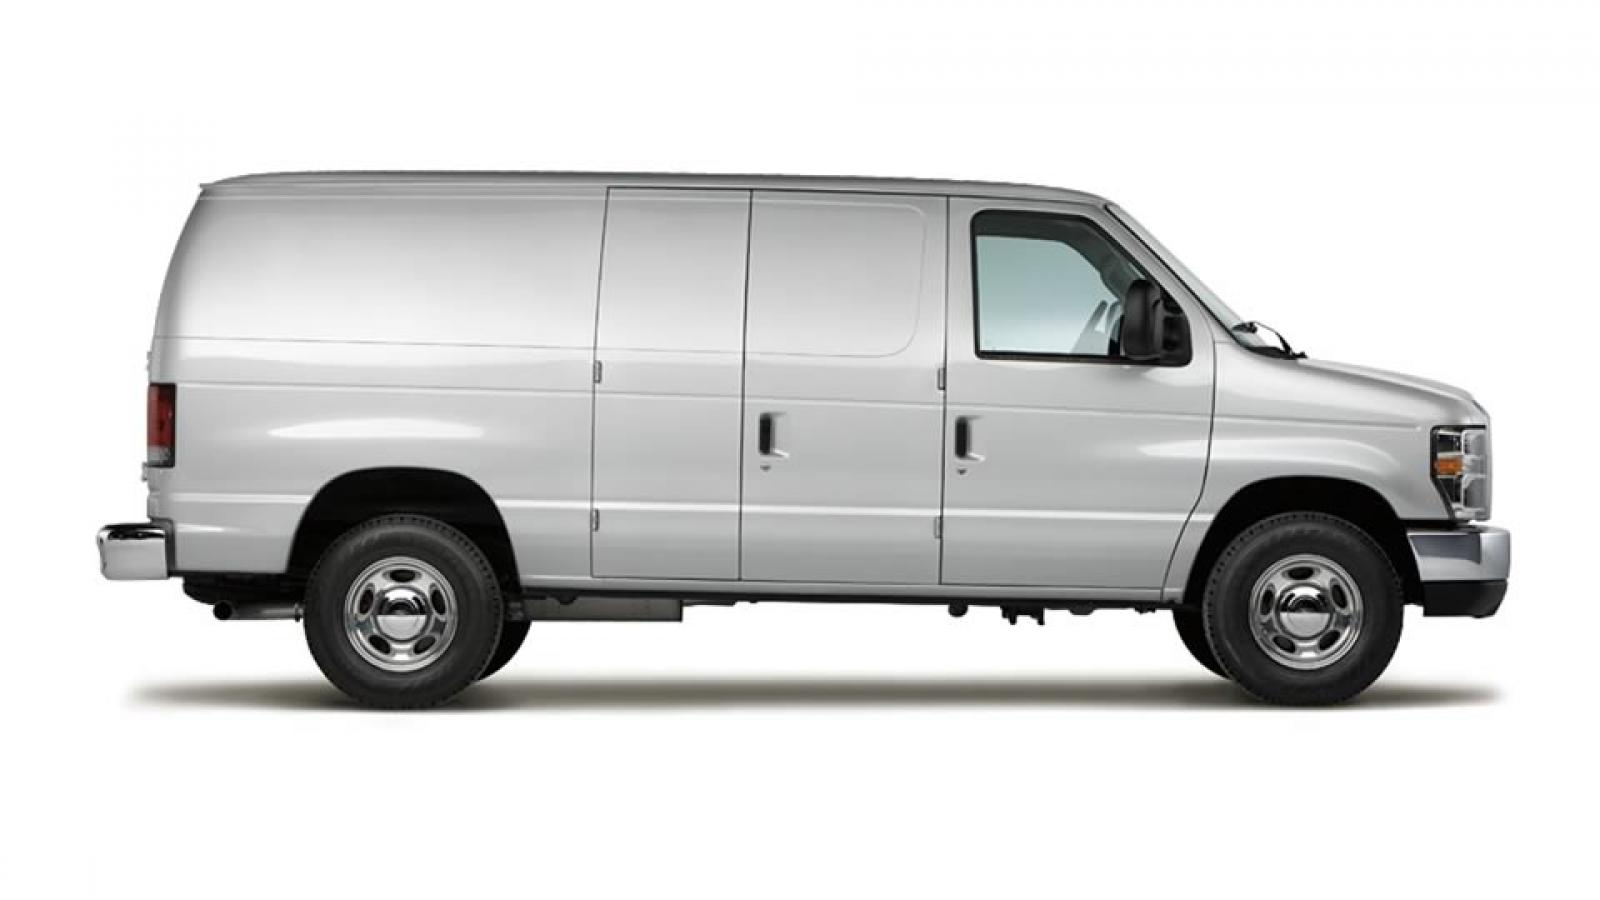 2012 ford e series van information and photos zombiedrive. Black Bedroom Furniture Sets. Home Design Ideas